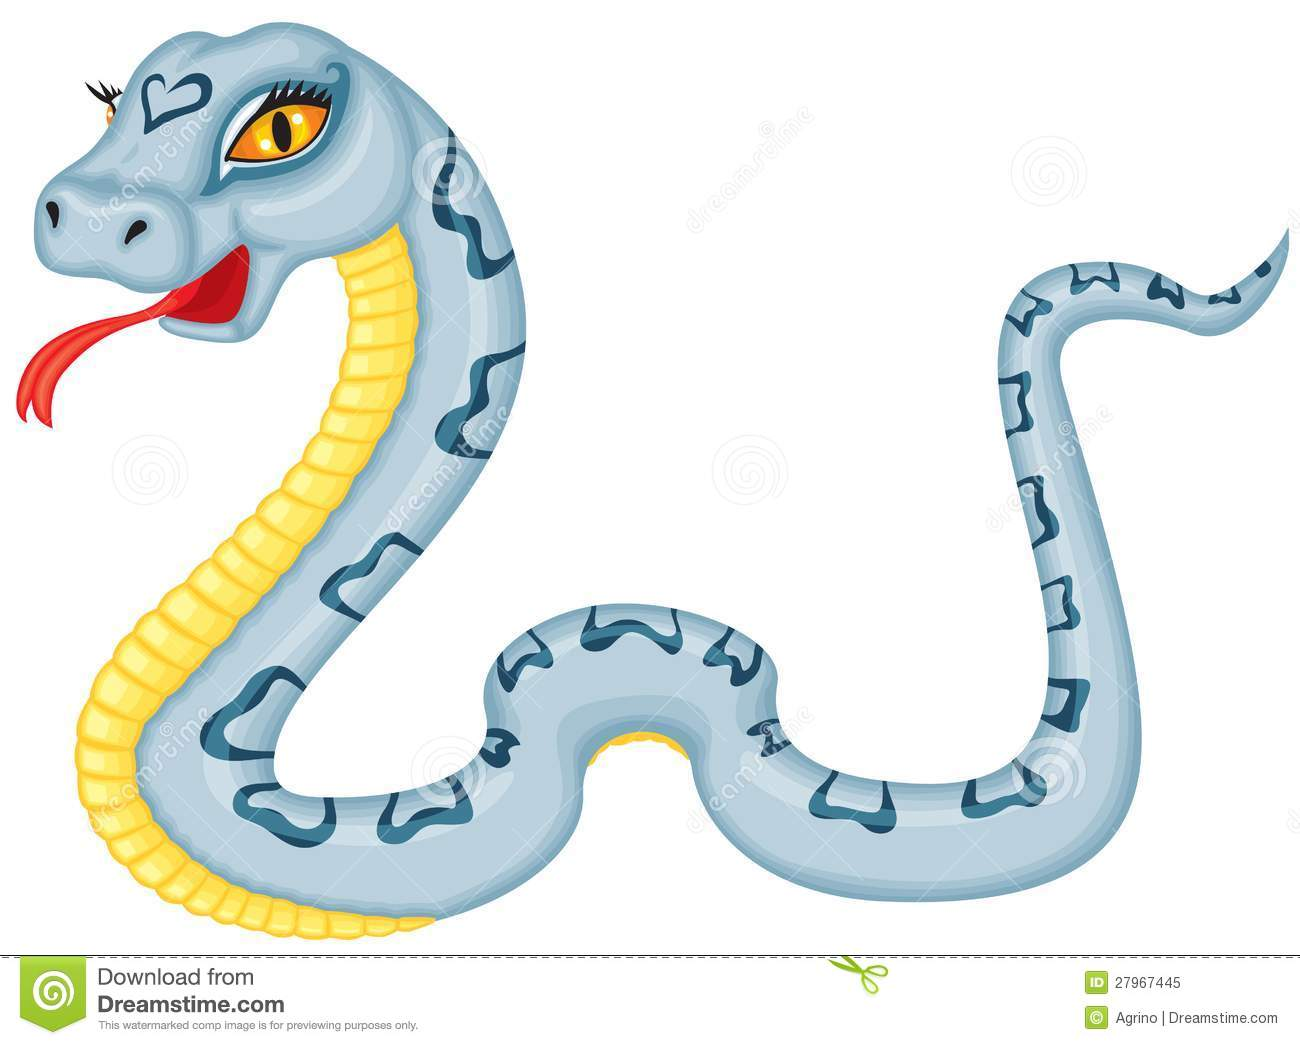 cartoon serpent royalty free stock photo image 27967445